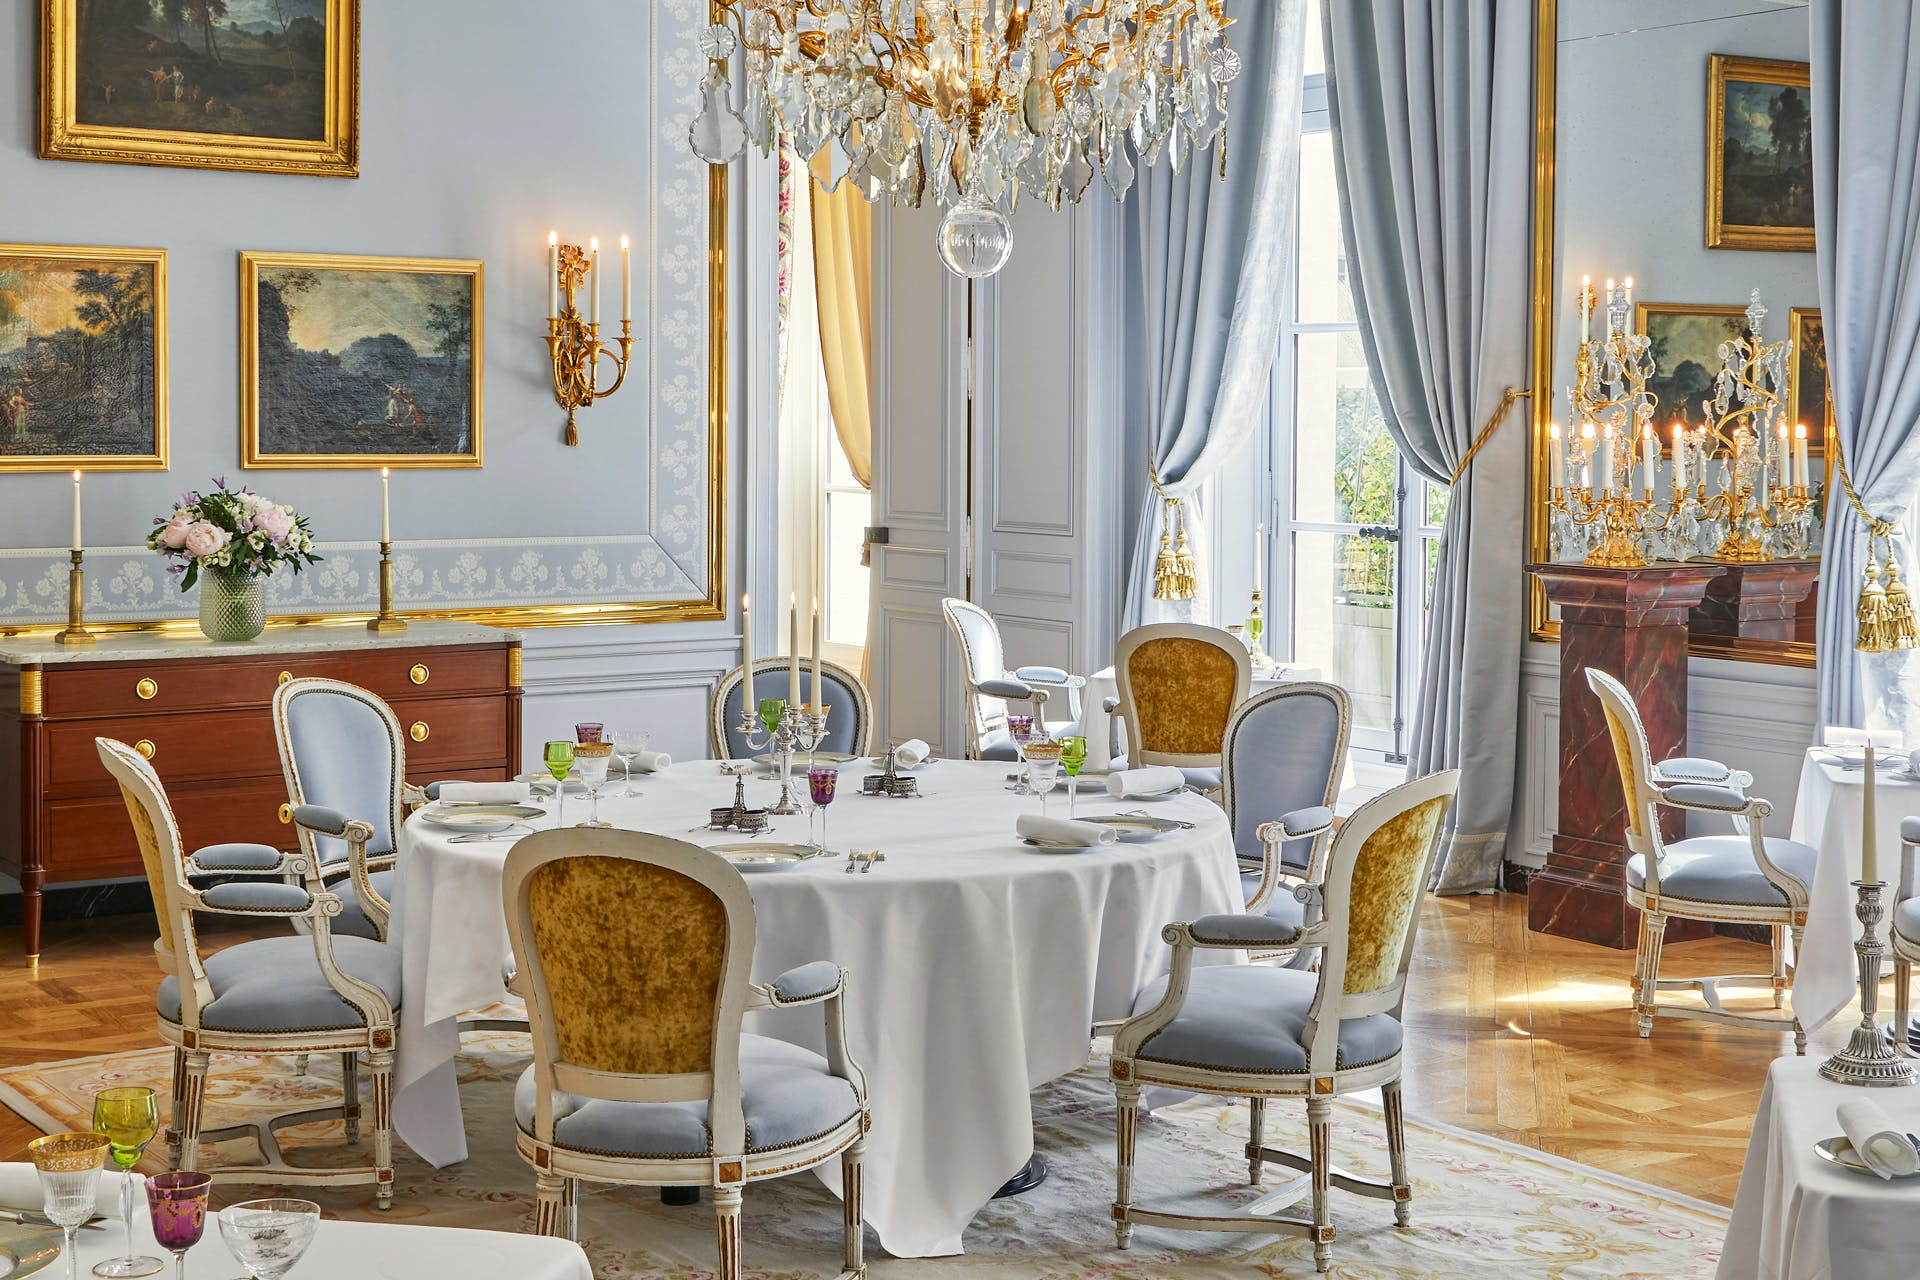 Luxury hotel Airelles Palace of Versailles (France), Le Grand Controle  (France) - Official site